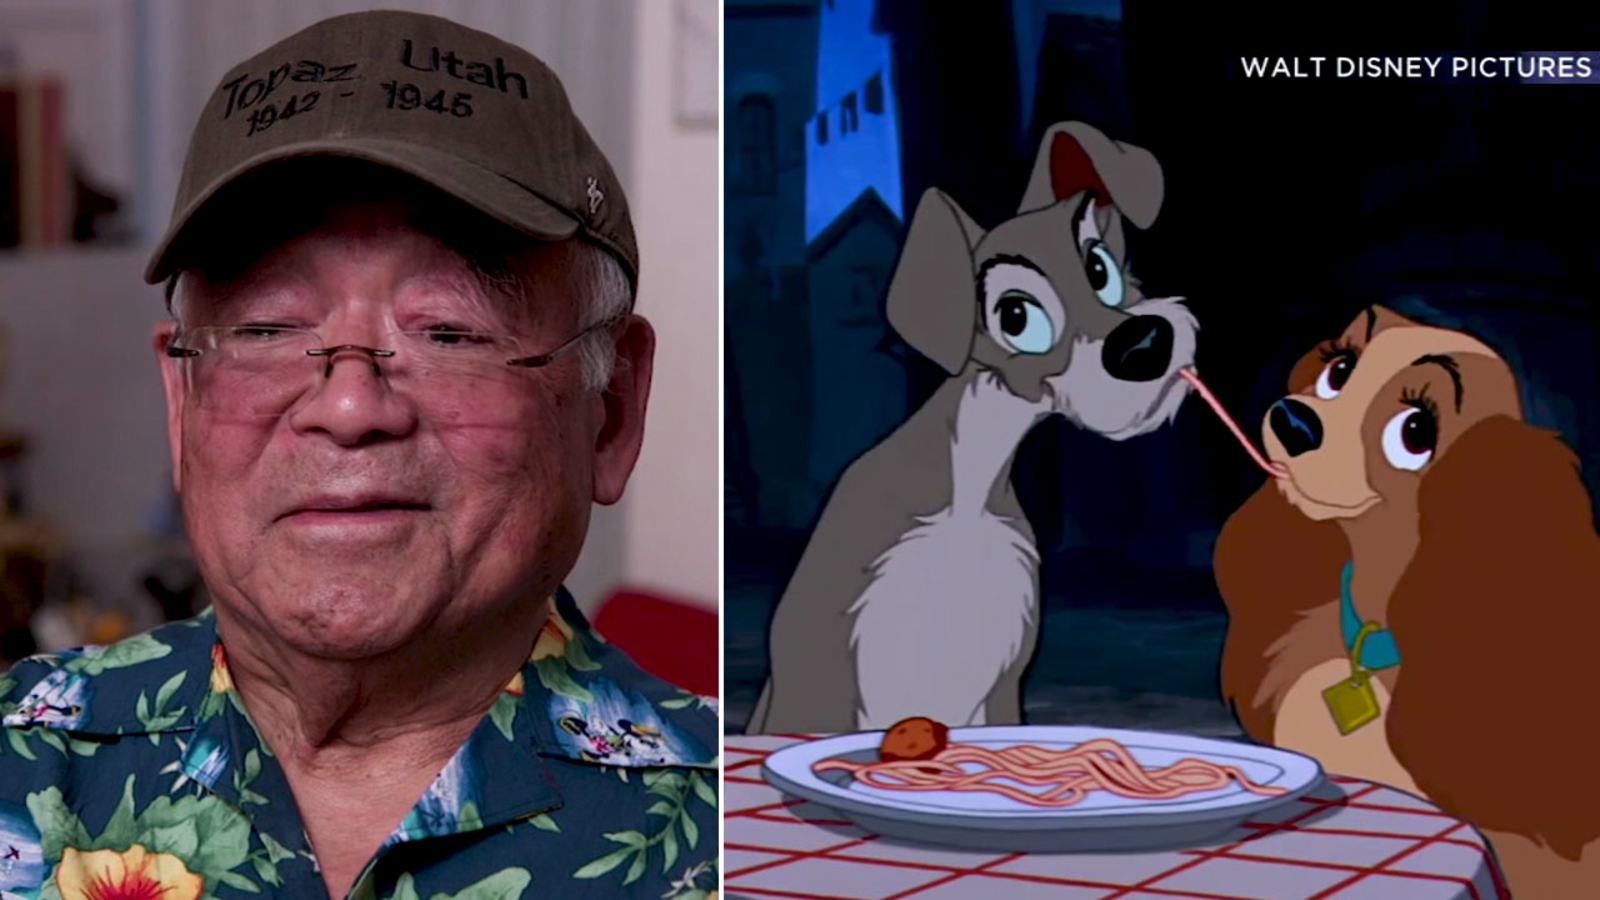 Artist Willie Ito Man Behind Iconic Lady And The Tramp Kiss Reflects On His Life Career Abc7 Los Angeles